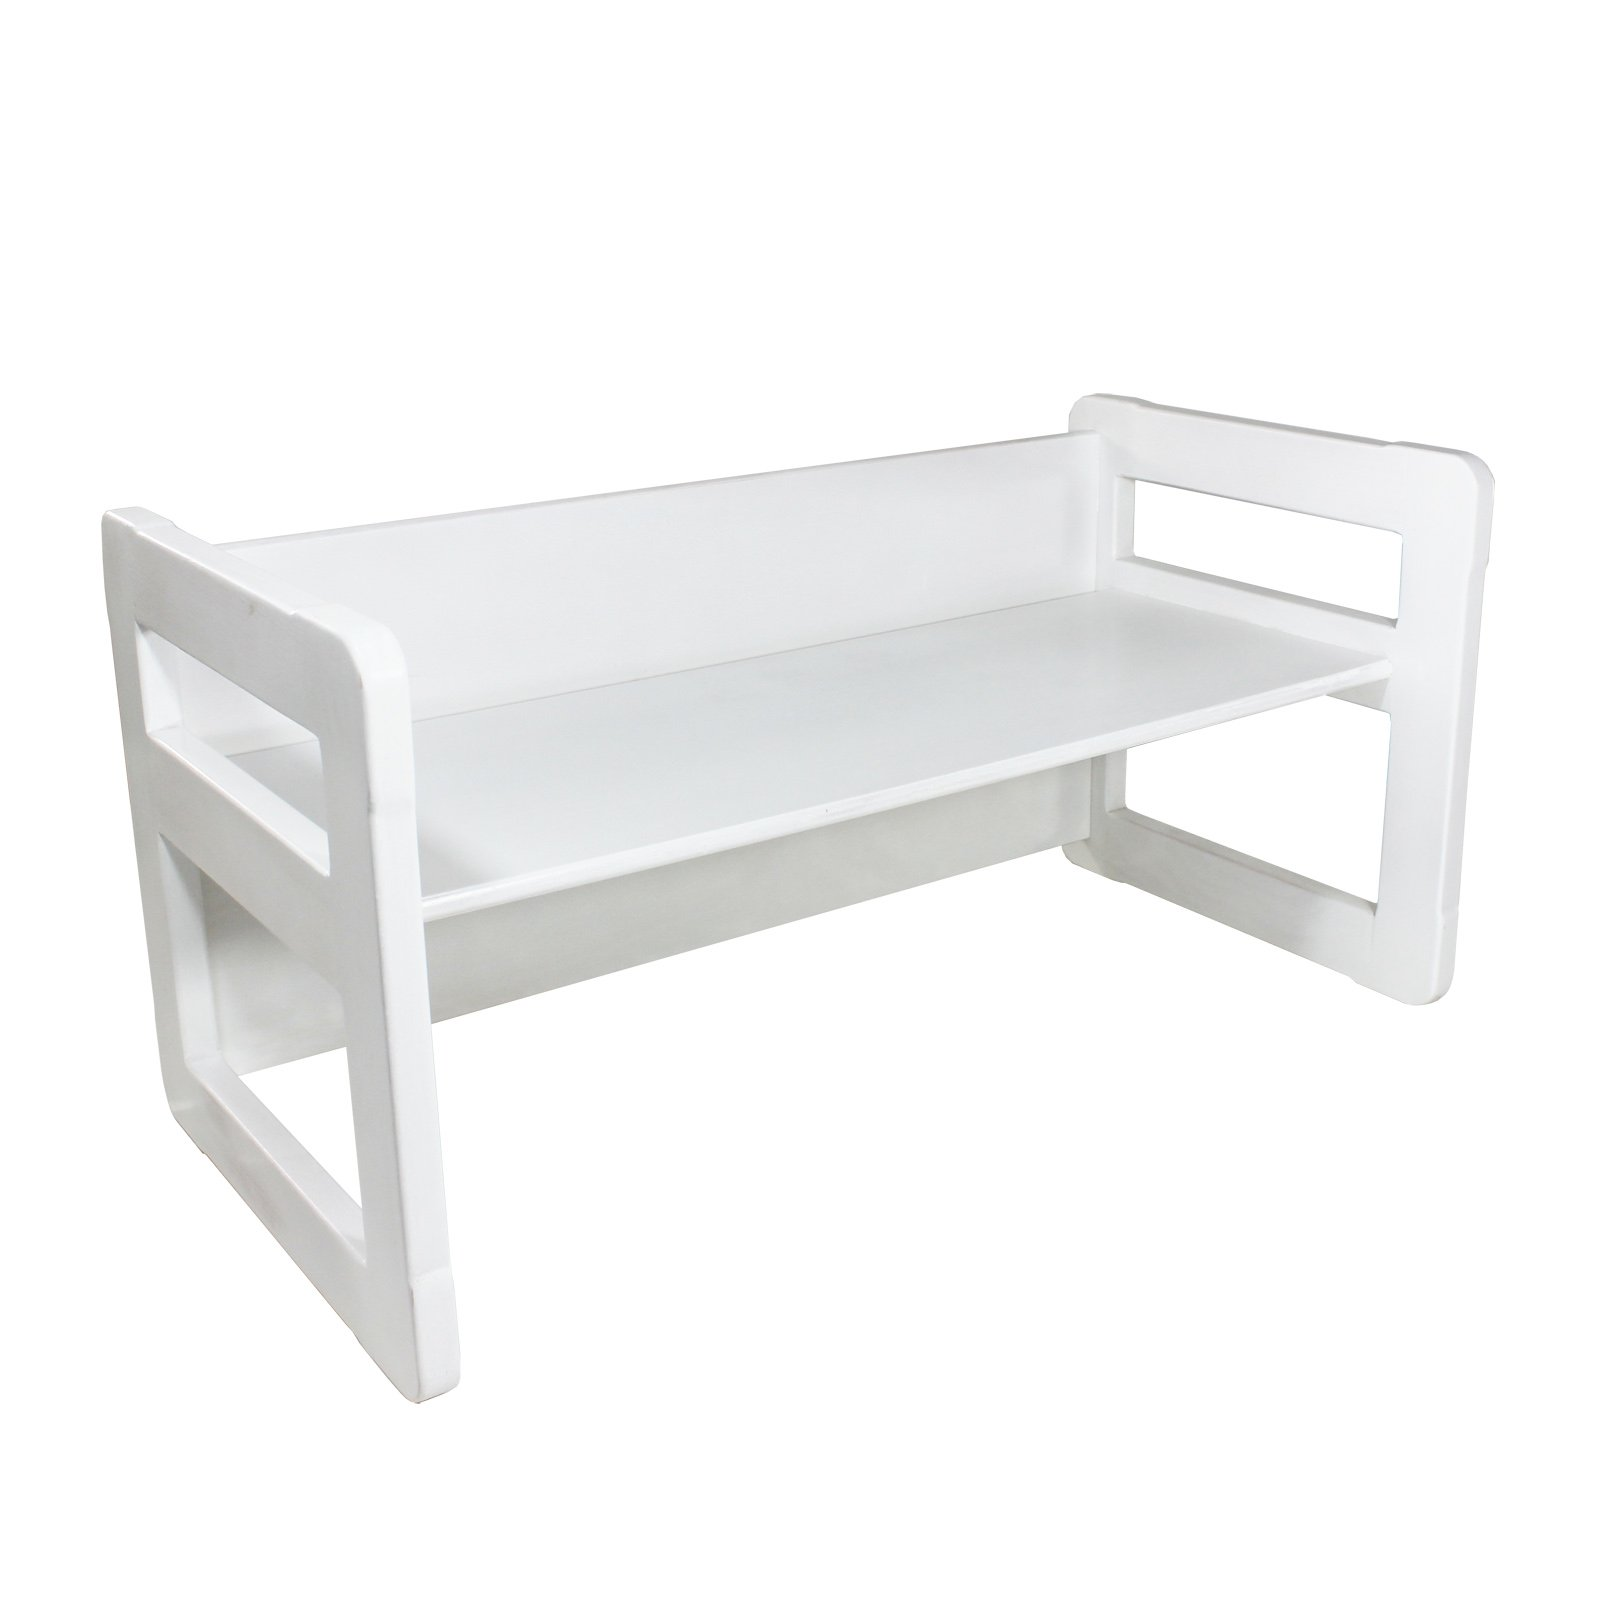 3 in 1 Childrens Multifunctional Furniture Set of 2, One Small Bench or Table and One Large Bench or Table Beech Wood, White Stained by Obique Ltd (Image #9)